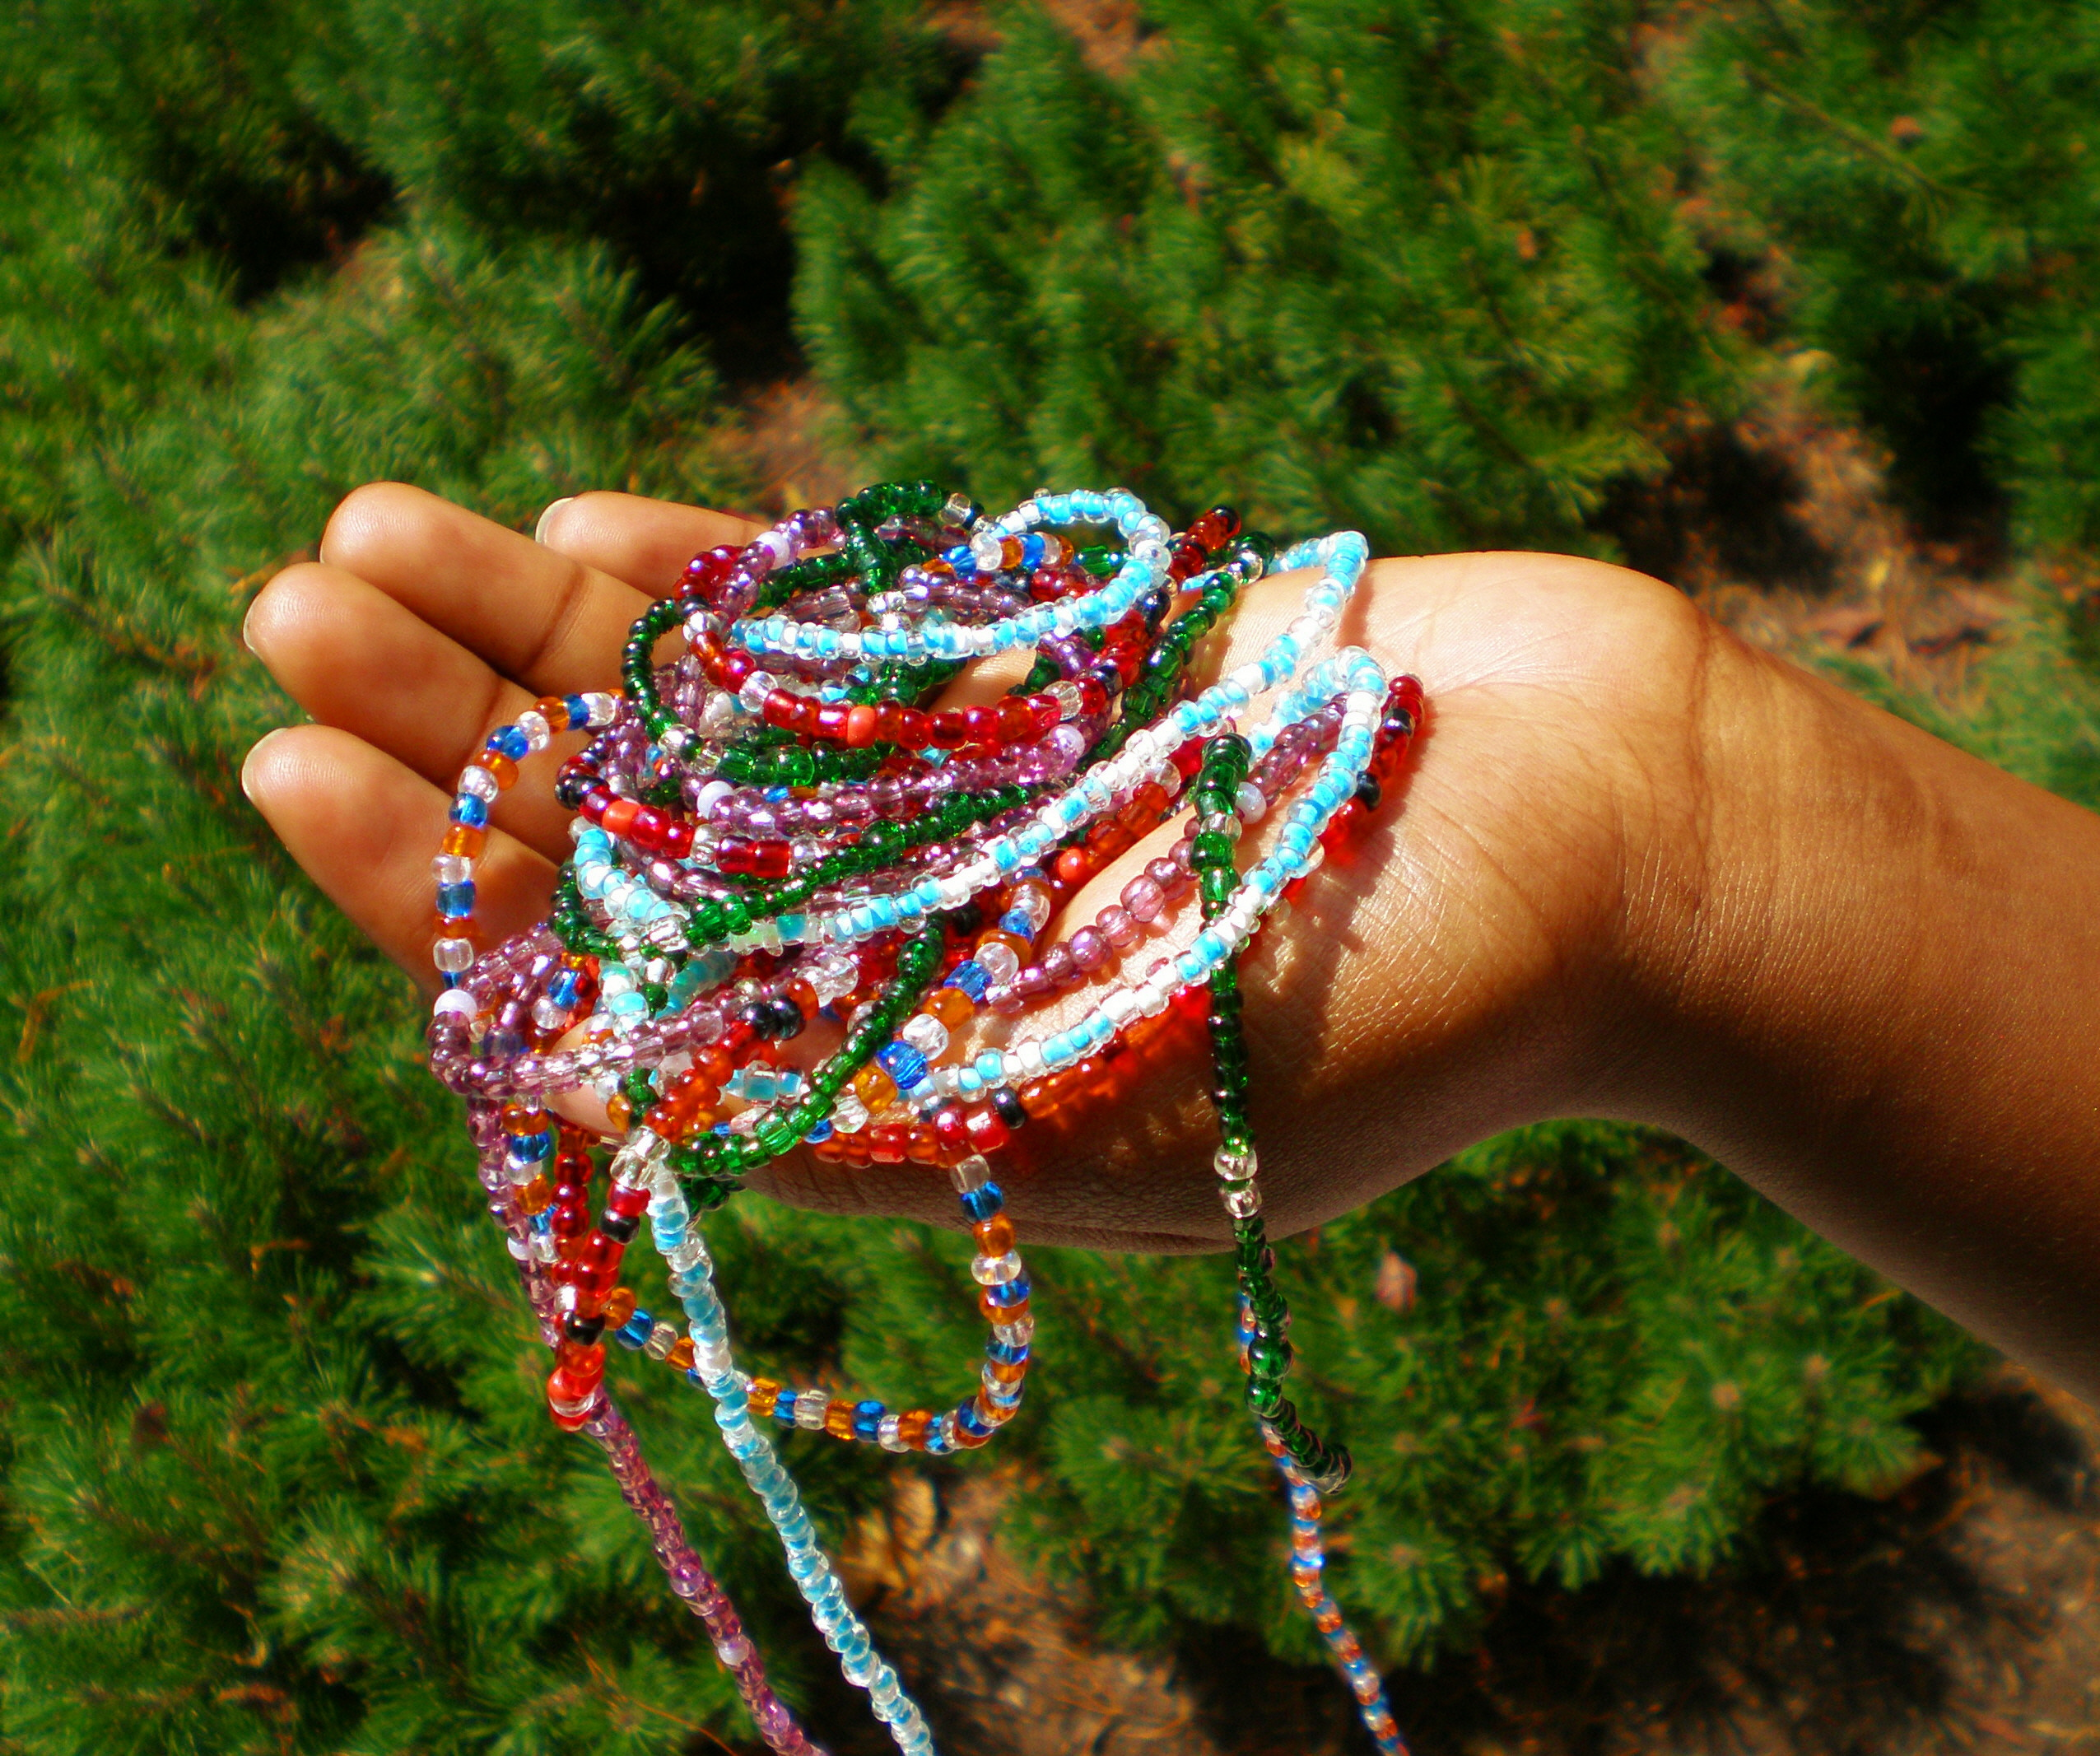 A handfull of beads